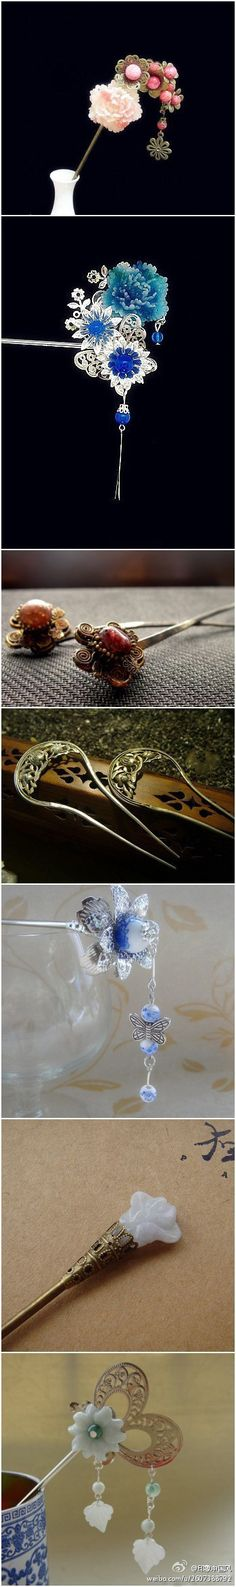 Ancient Chinese hair pins or accessories!! Very classic and beautiful!!!!!